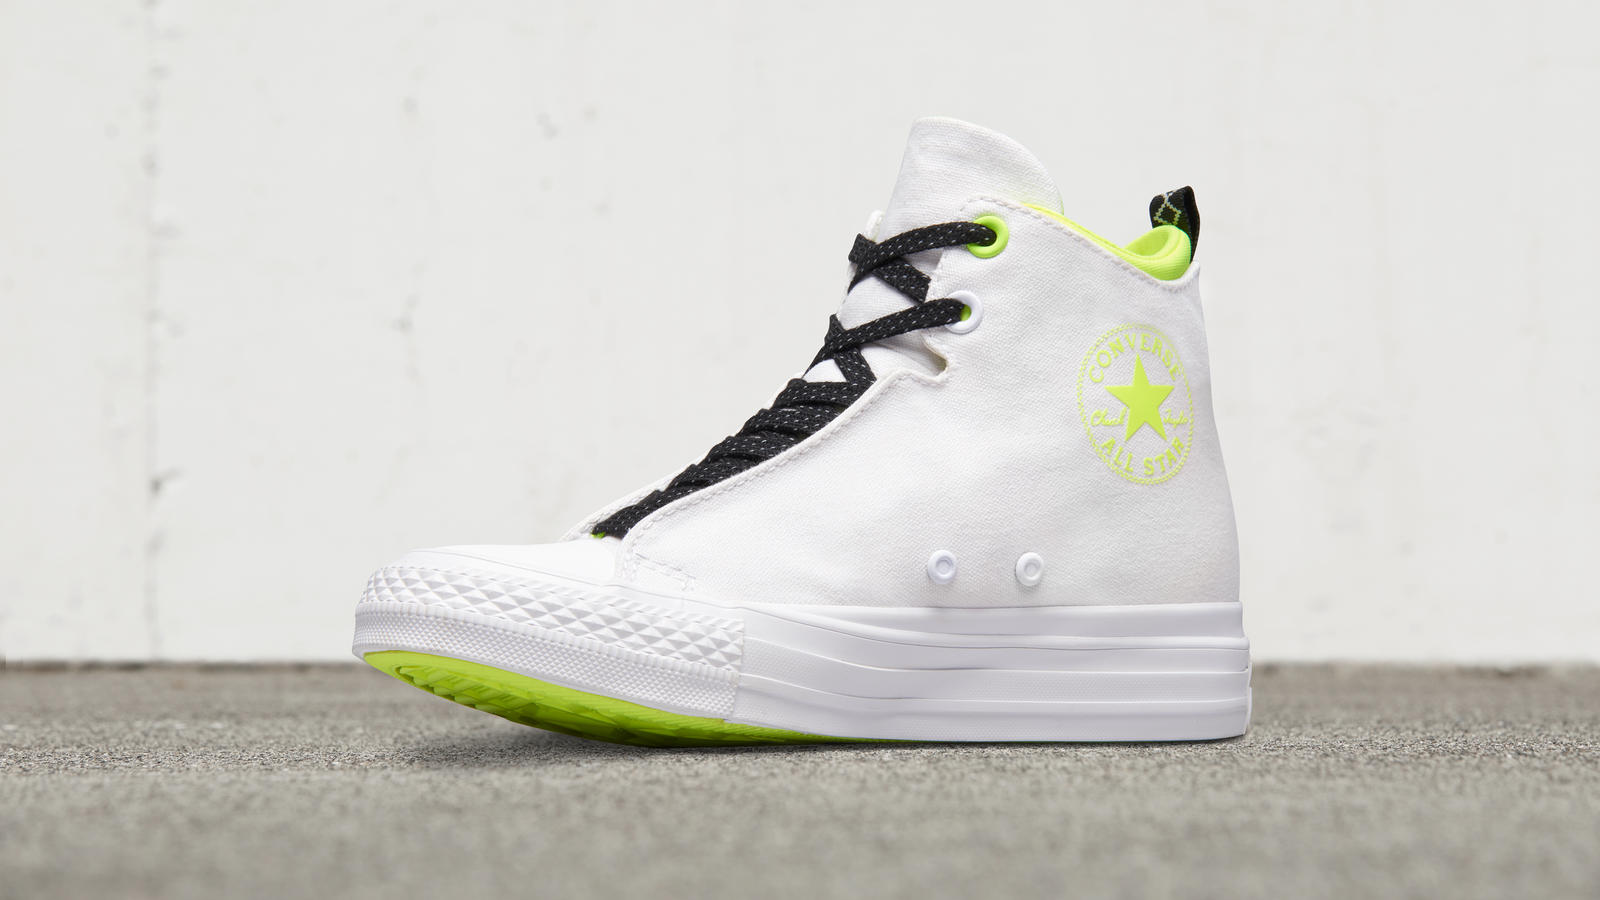 CONVERSE CHUCK TAYLOR ALL STAR SELENE SHIELD MID TOP WEDGE